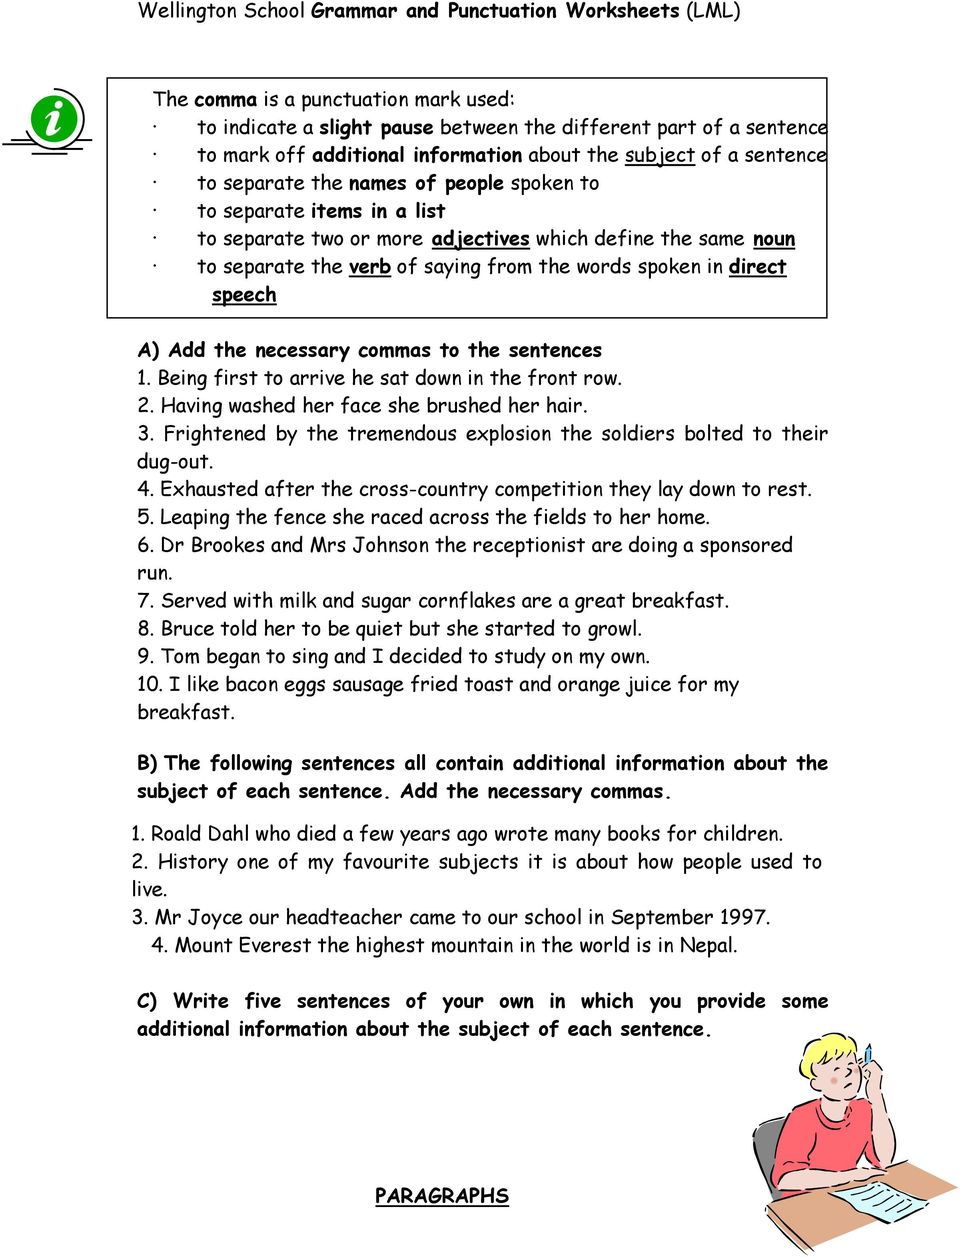 medium resolution of GRAMMAR AND PUNCTUATION WORKSHEETS - PDF Free Download